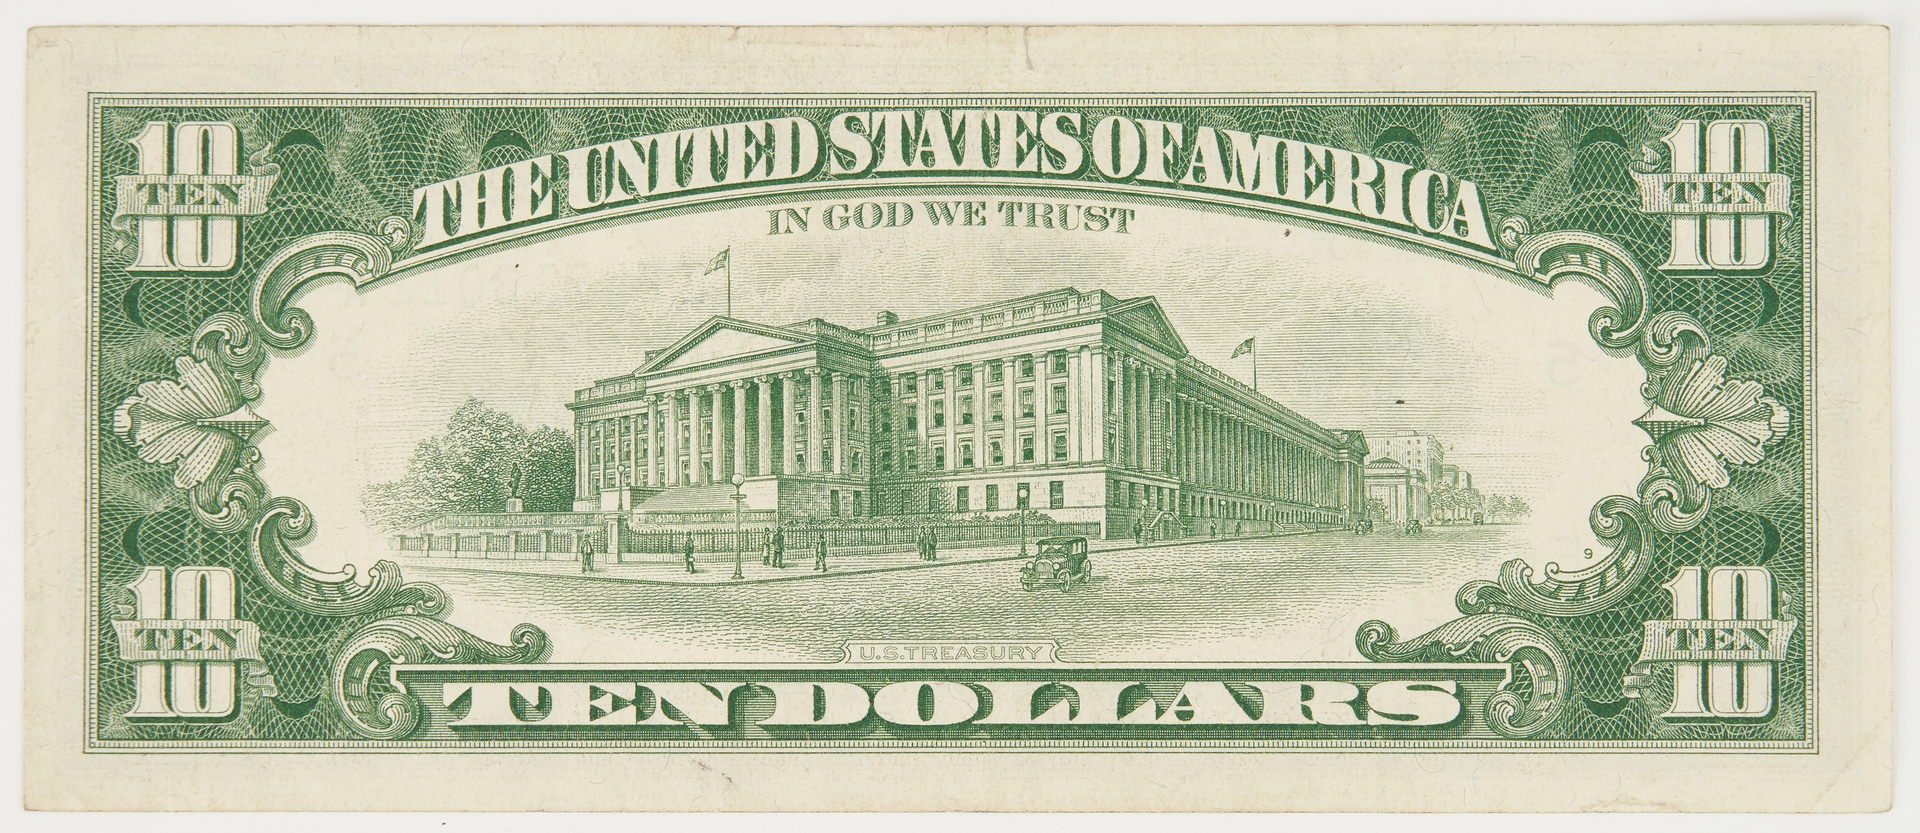 Lot 1156: 1963A $10 Note Error, Mismatched Serial Number